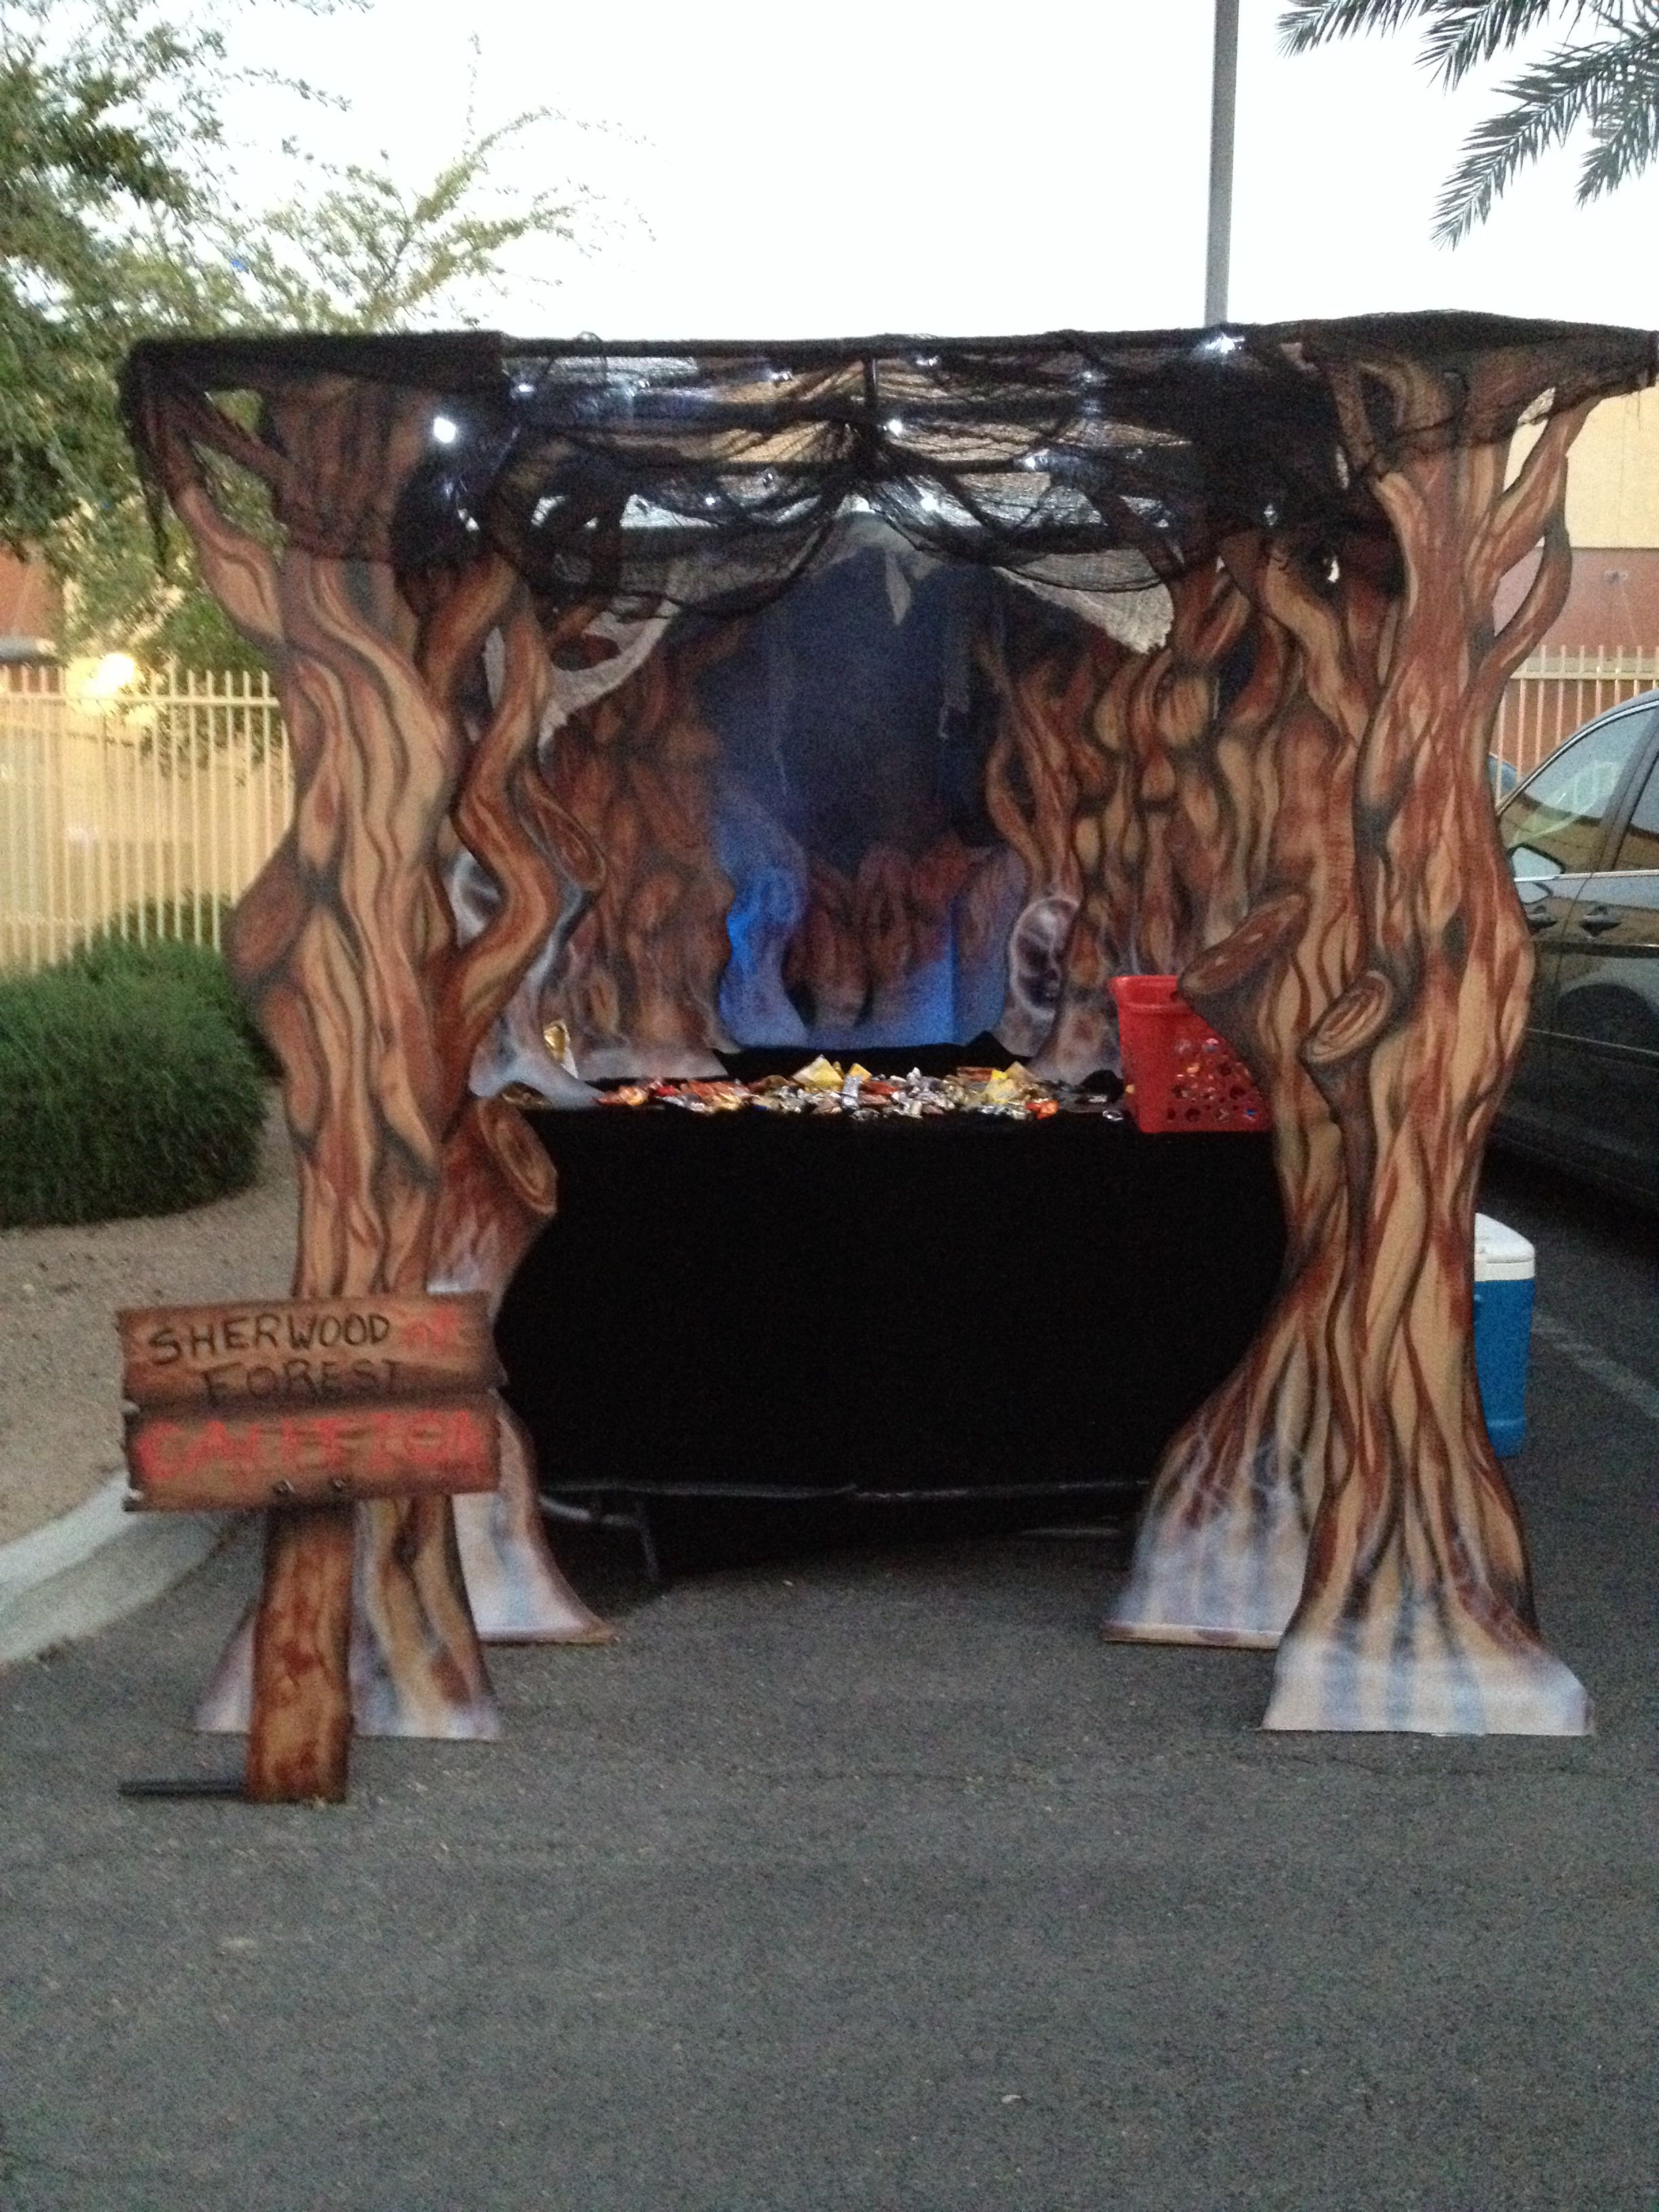 Trunk Or Treat Ideas For Pickup Trucks : trunk, treat, ideas, pickup, trucks, Trunk, Treat,, Cardboard, Structure, Installed, Pickup, Truck., Truck, Halloween, Treats